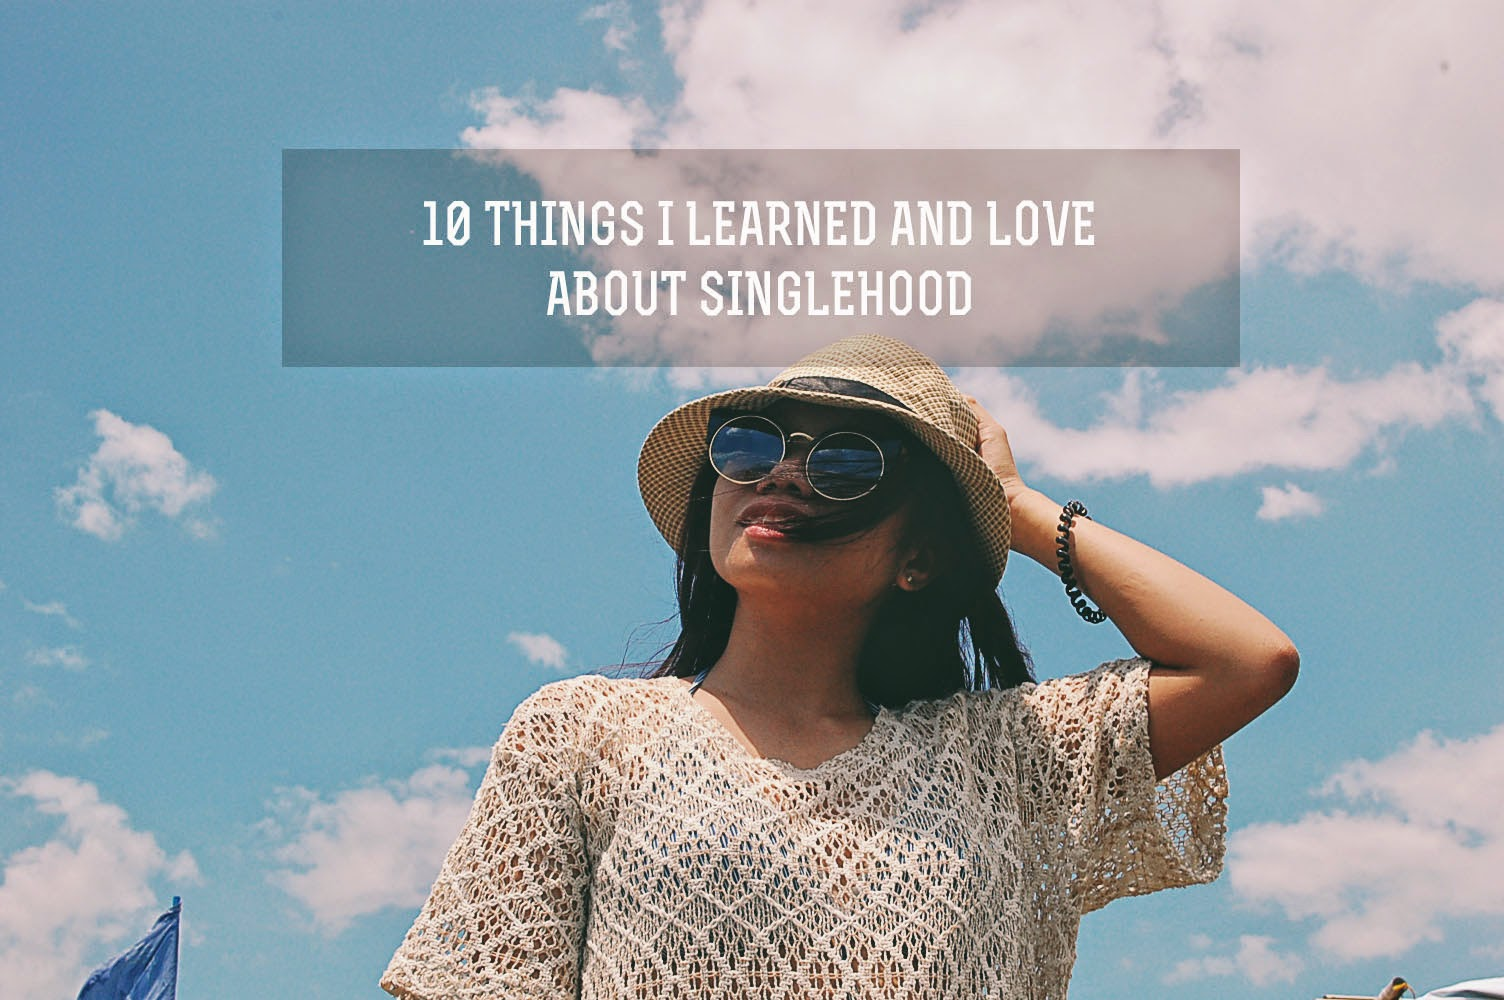 10 THINGS I LEARNED AND LOVE ABOUT SINGLEHOOD